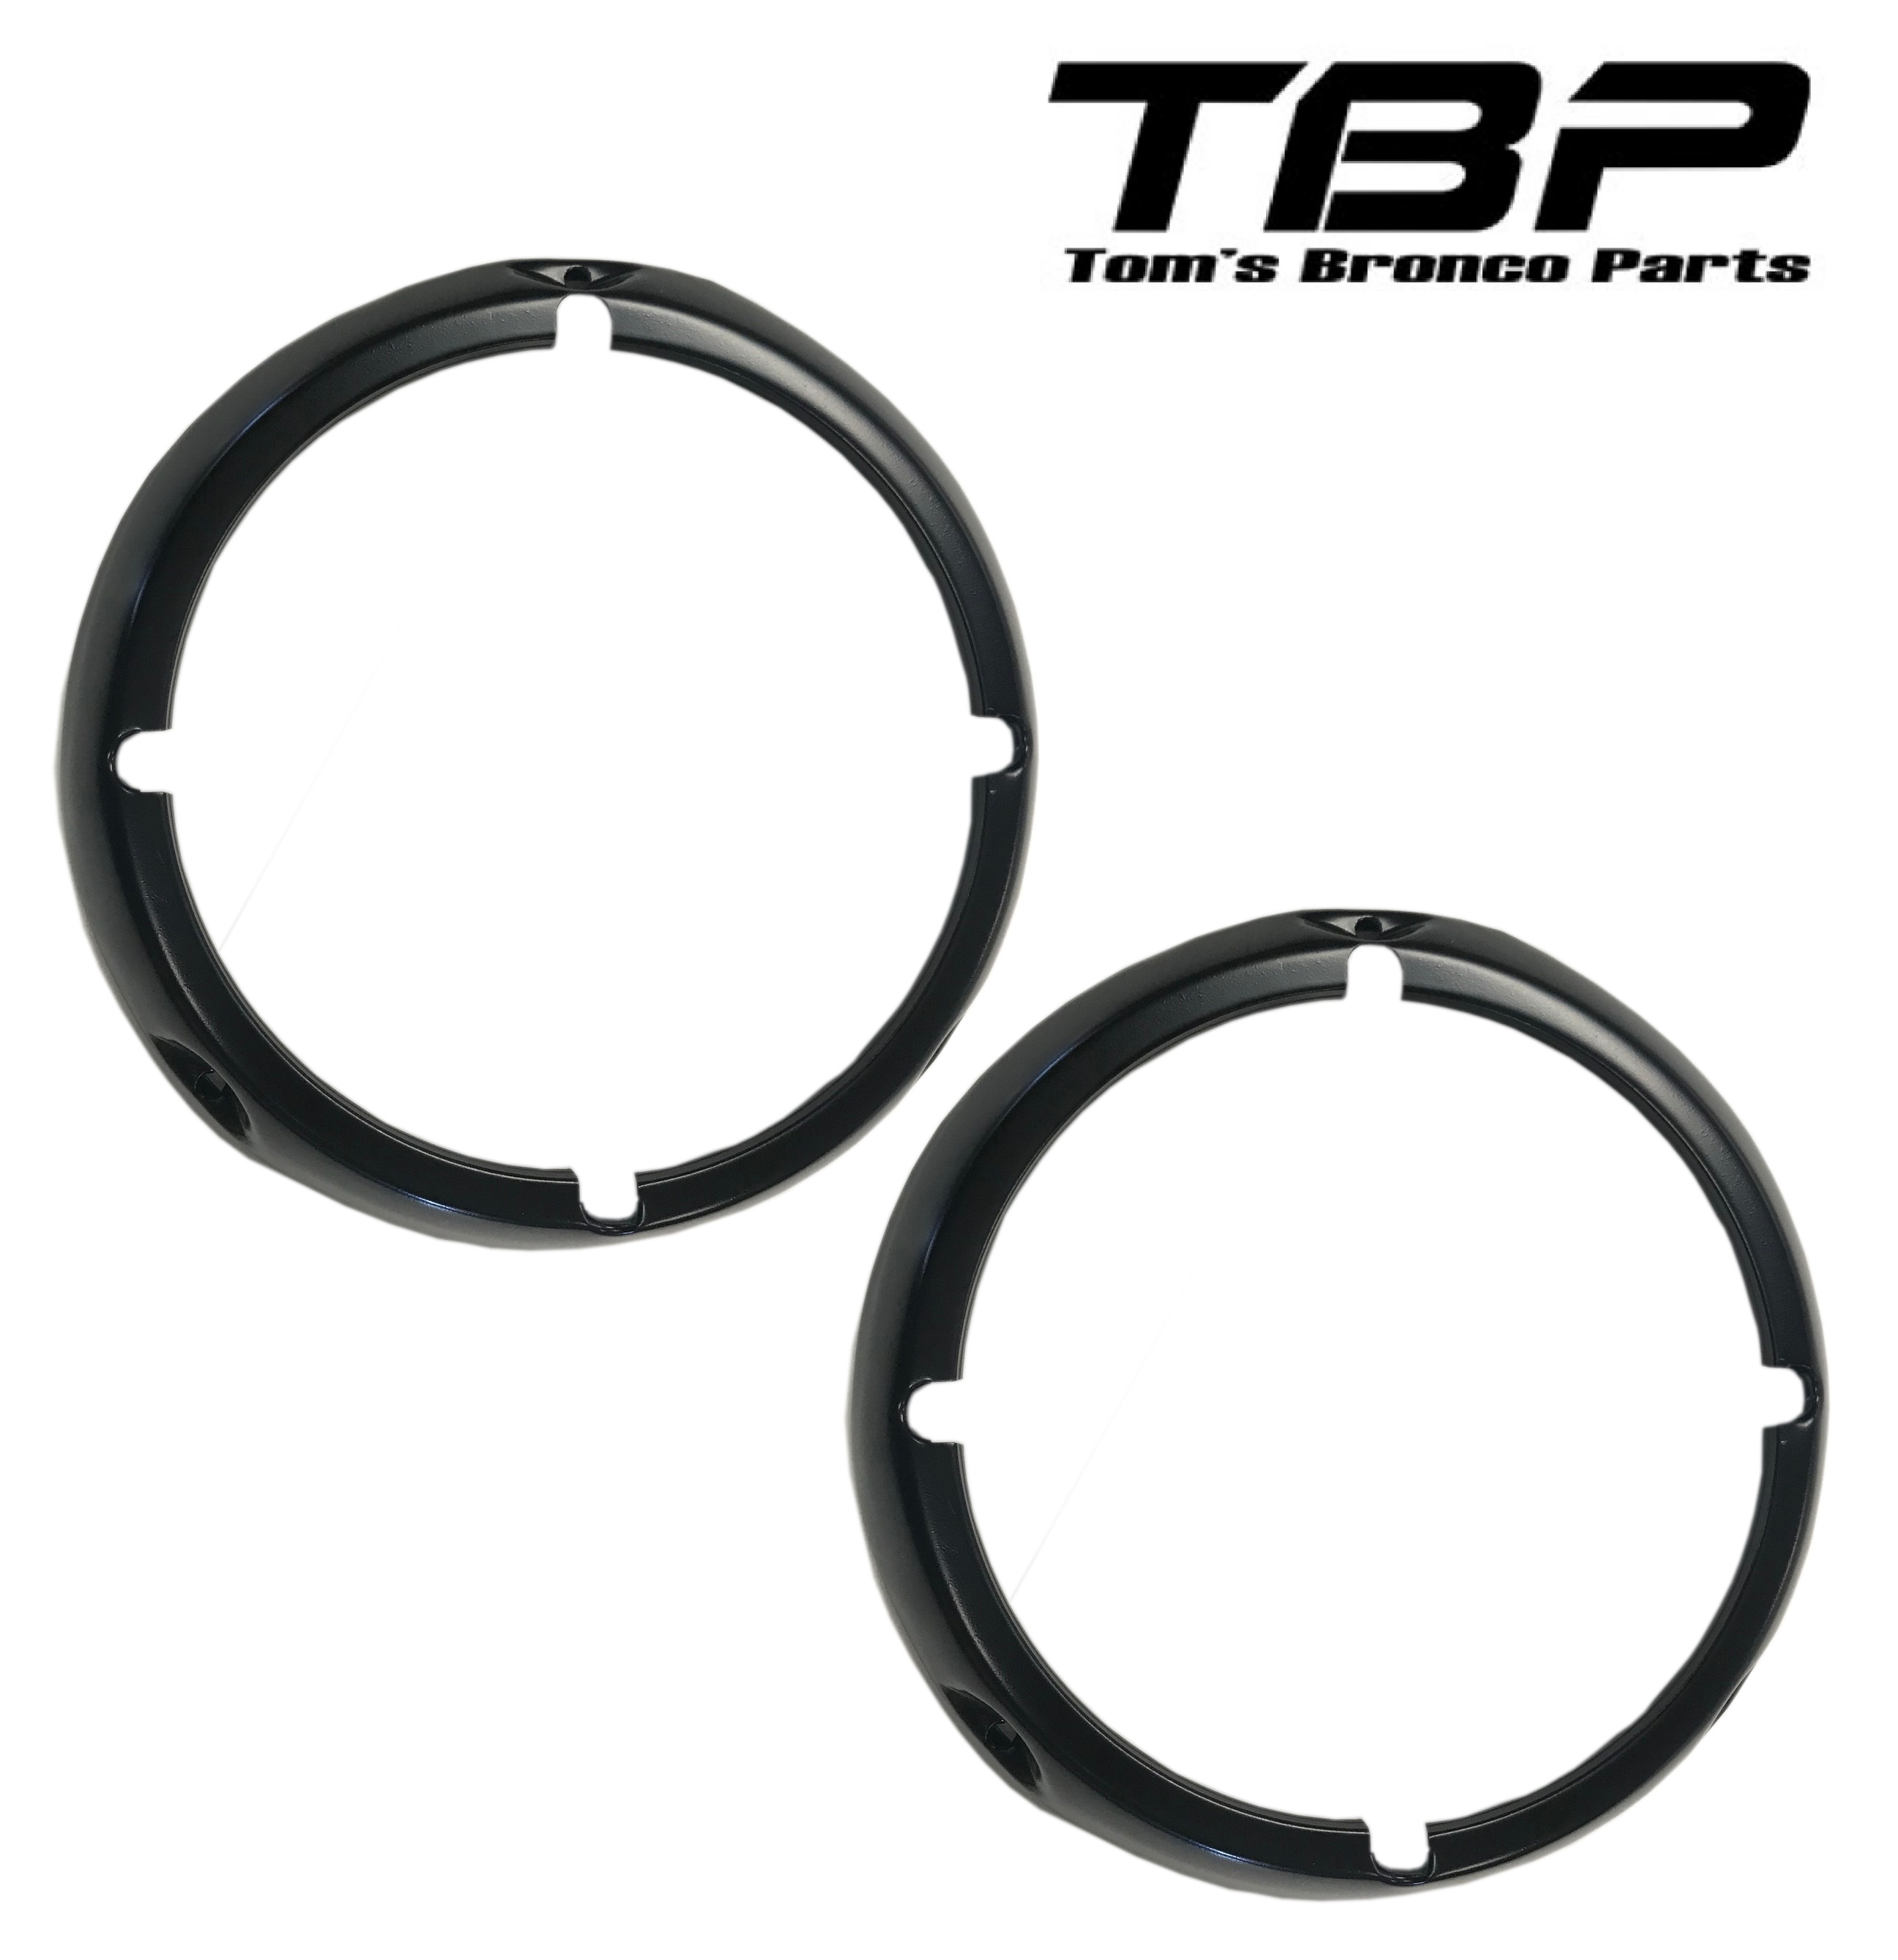 Black Headlight Bezel Rings, 71-77 Ford Bronco, pair